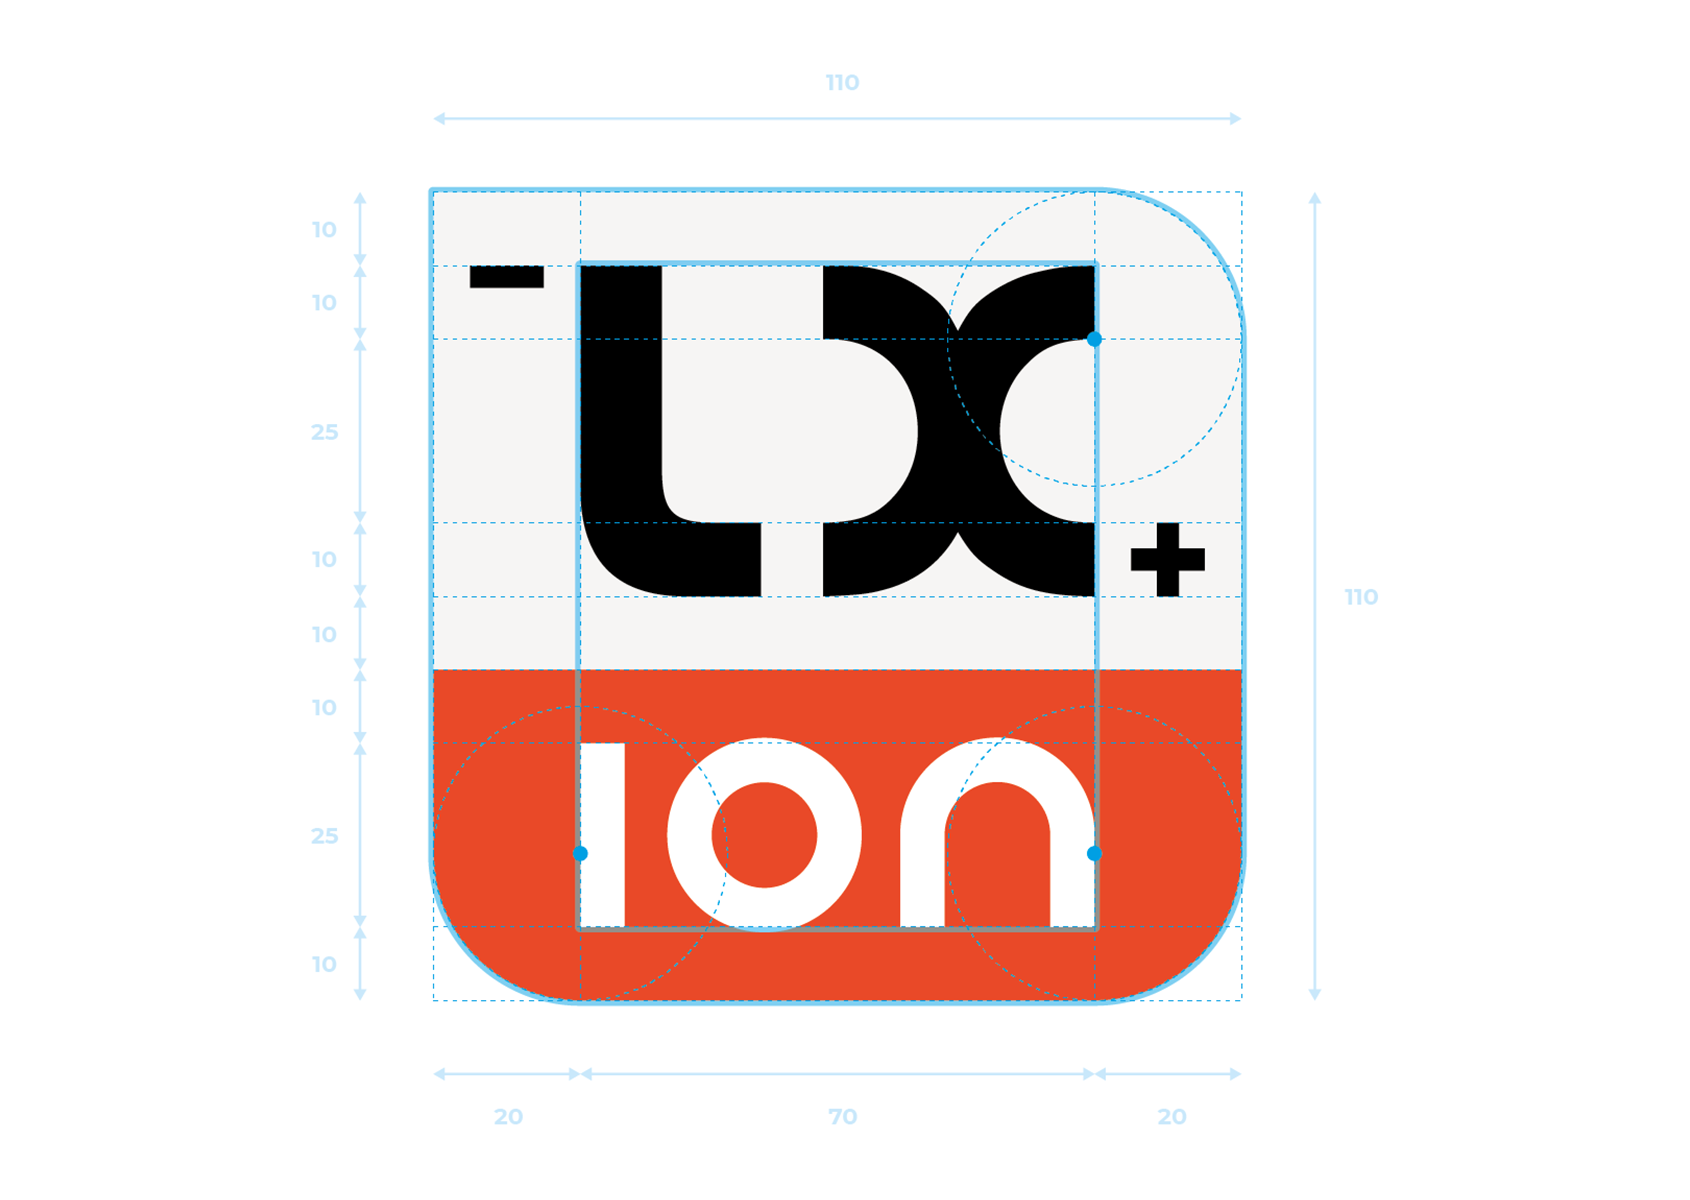 Logotype LX ion